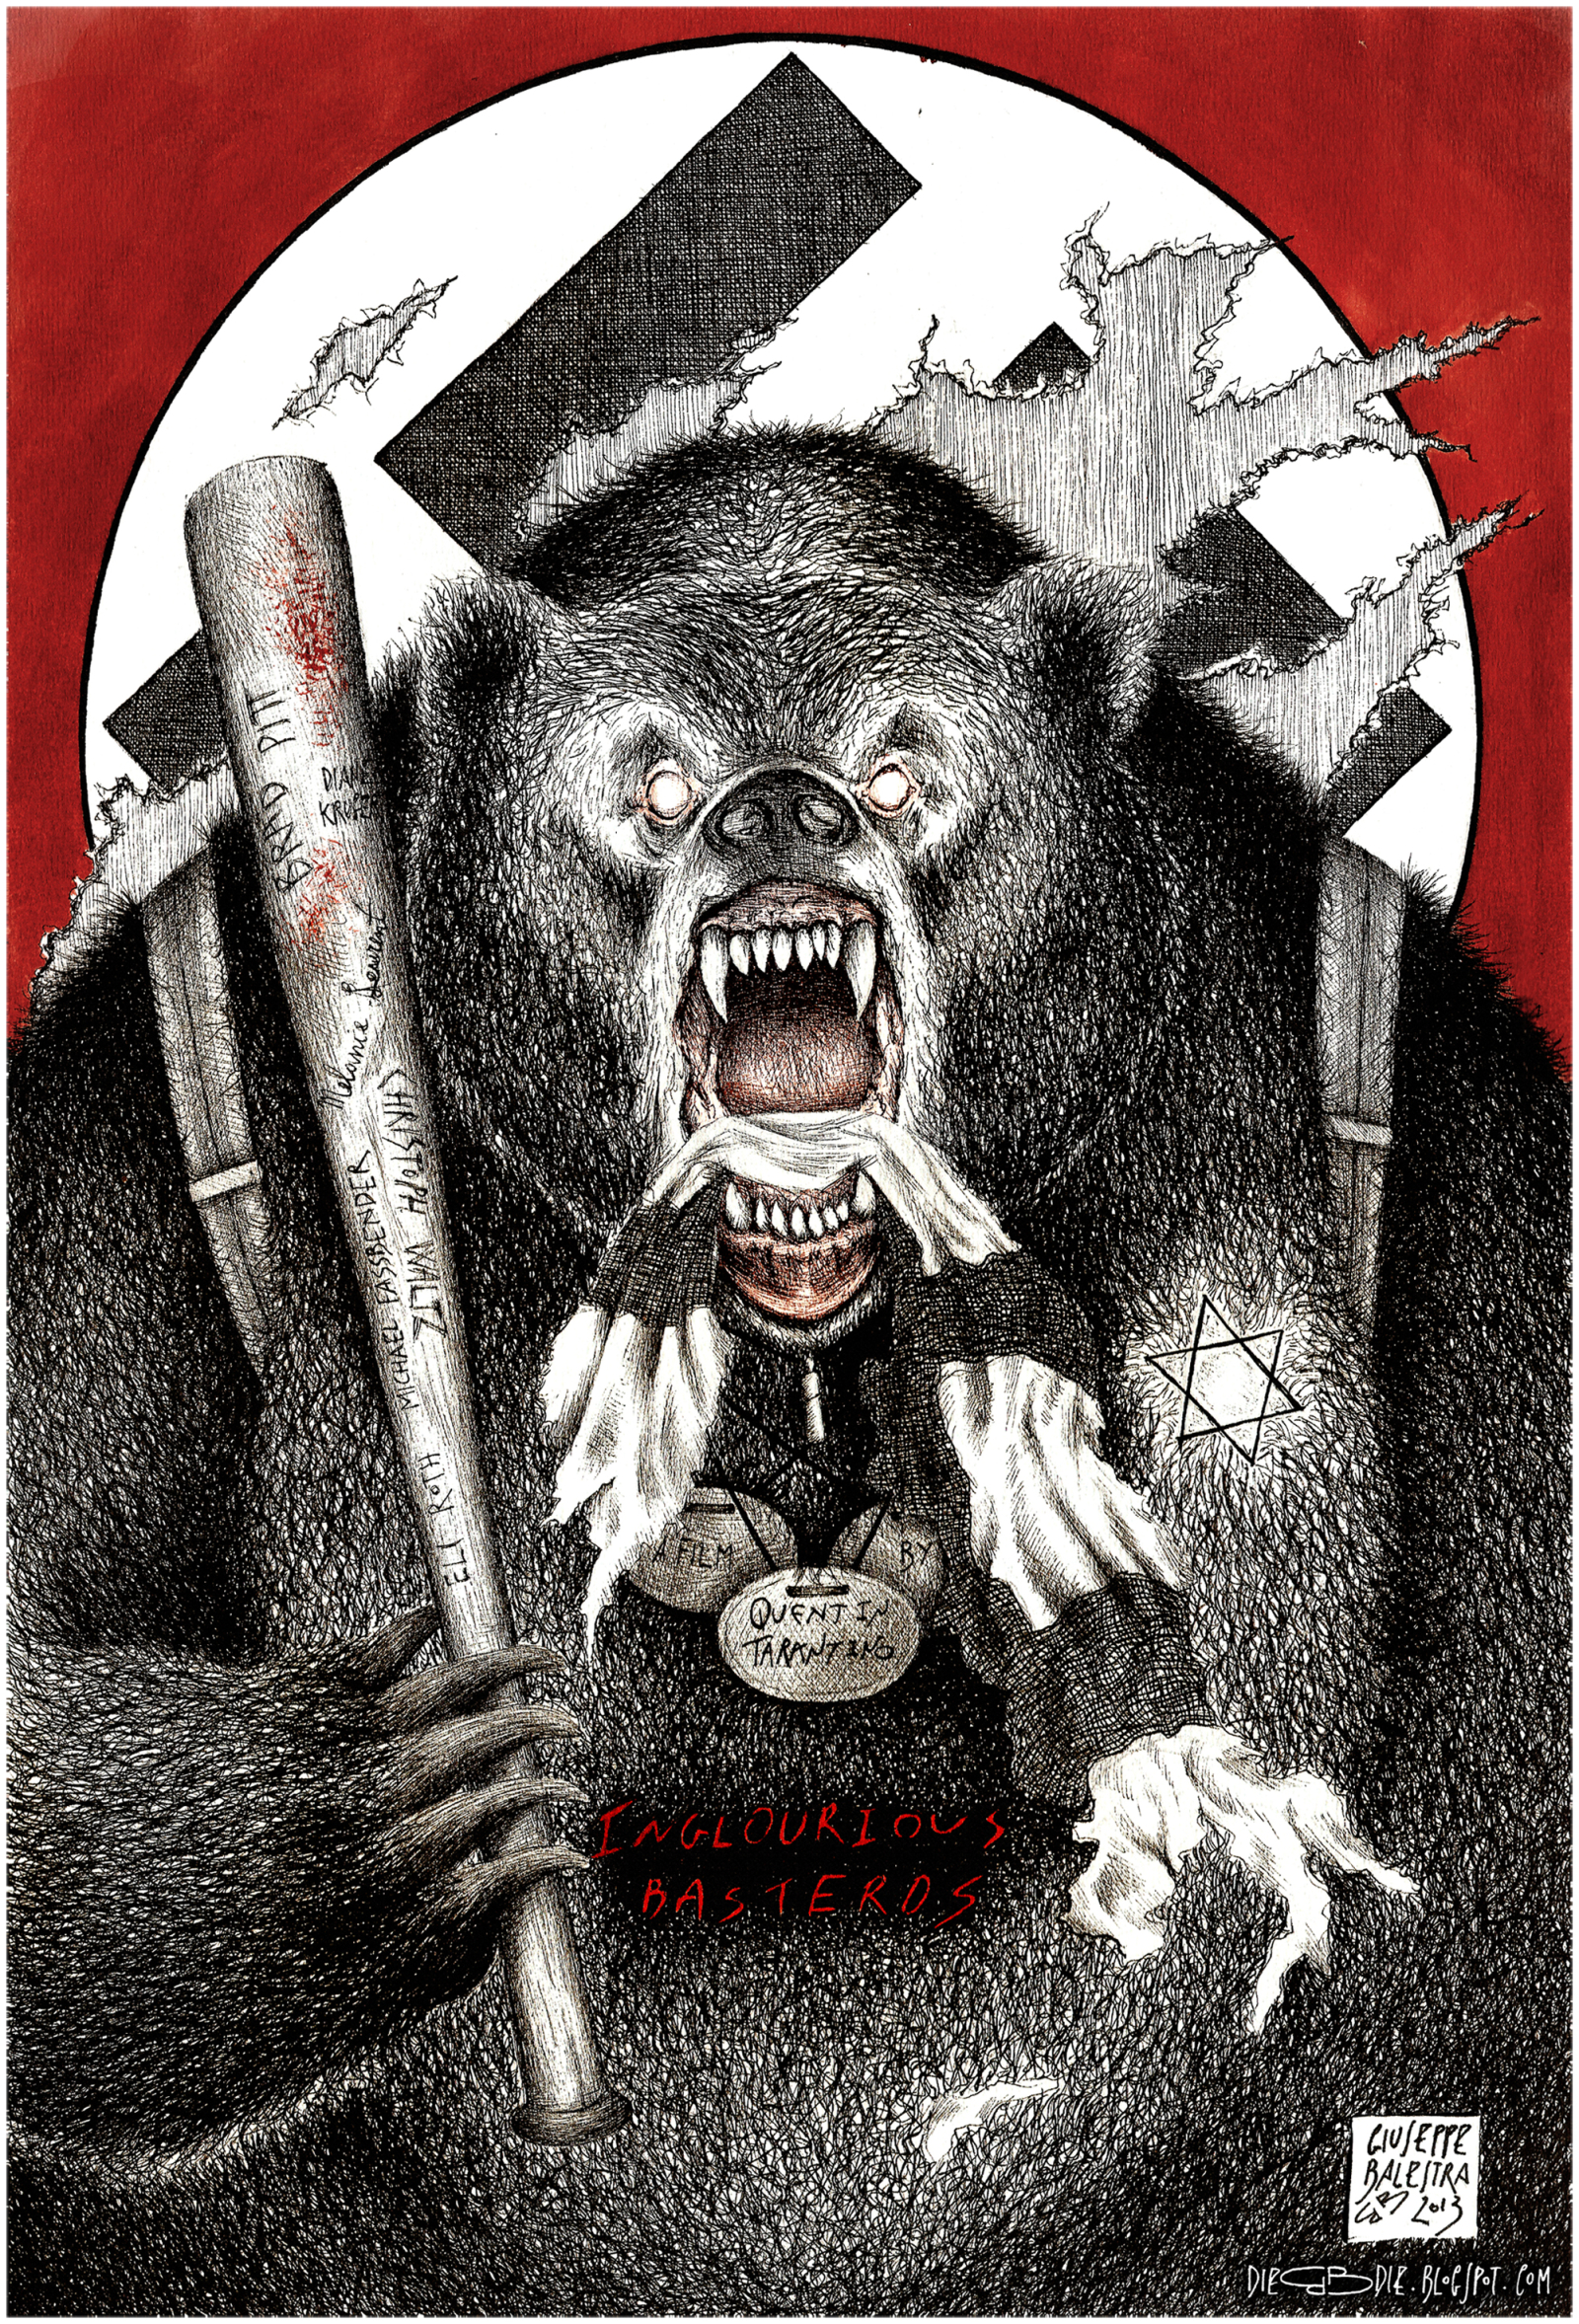 inglourious basterds the bear jew 2013 posterspy